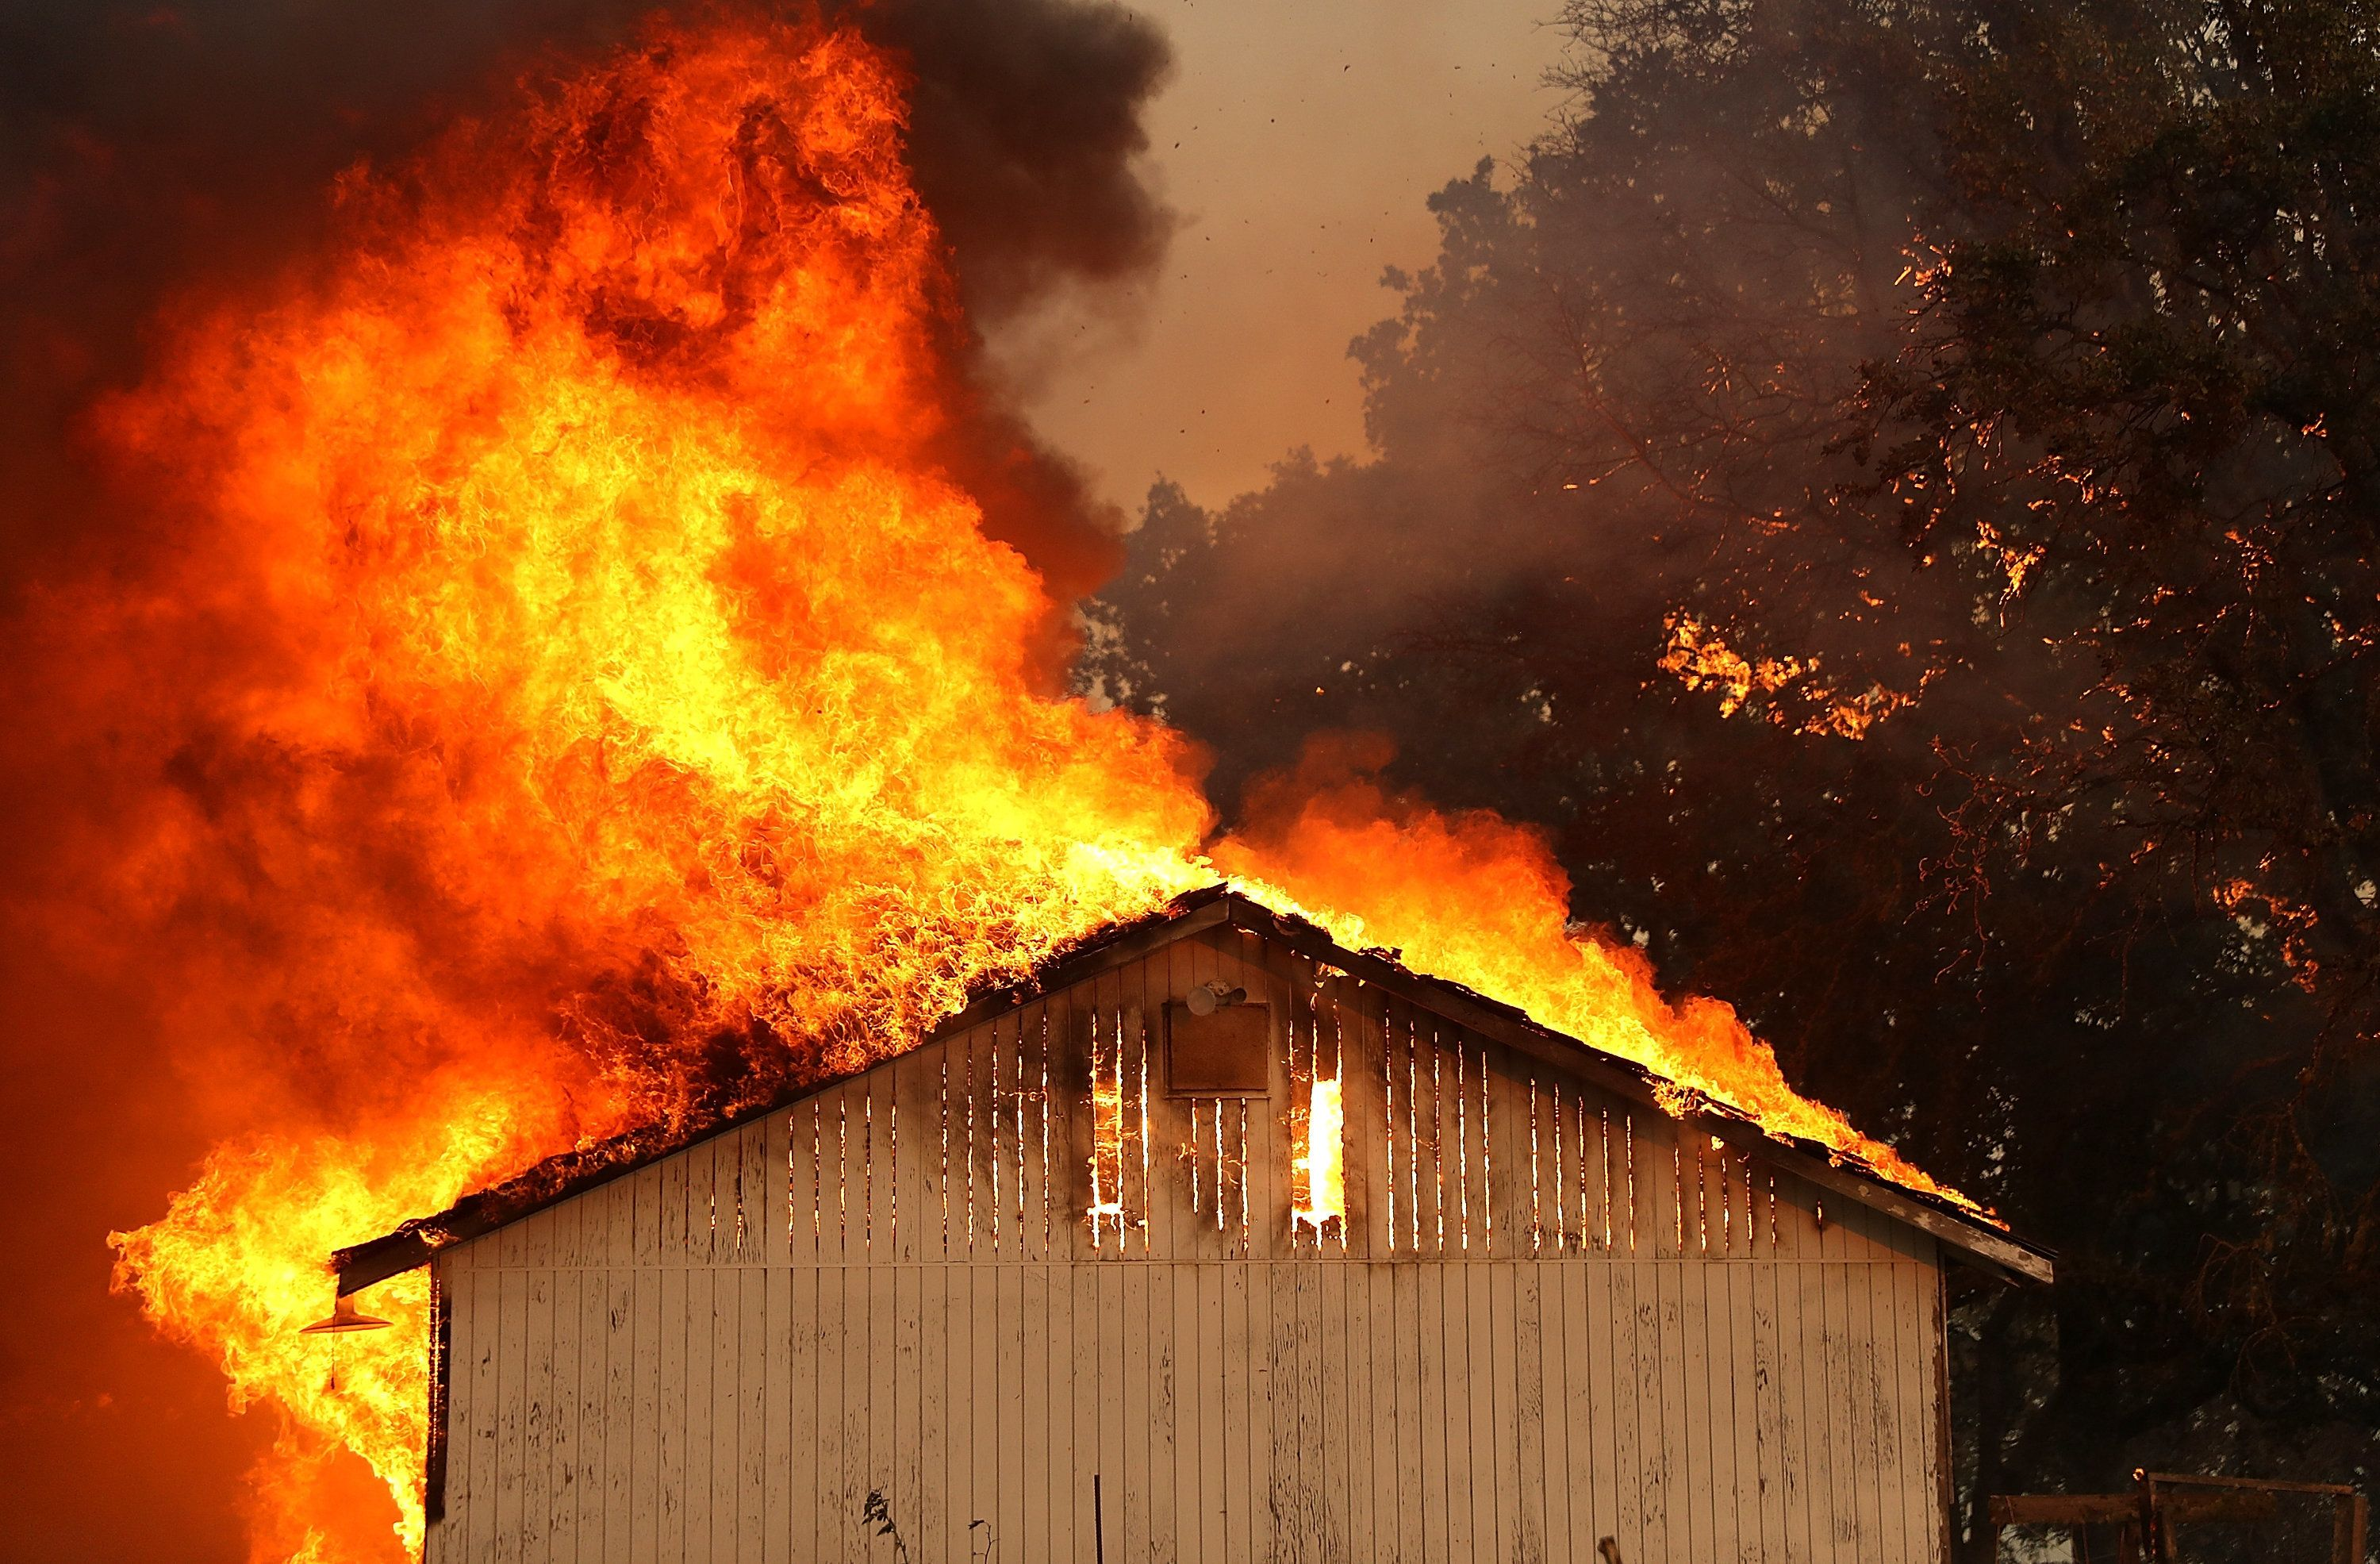 LAKEPORT, CA - JULY 31:  A home burns as the River Fire moves through the area on July 31, 2018 in Lakeport, California. The River Fire has burned over 27,000 acres, destroyed seven homes and stands at only eight percent contained.  (Photo by Justin Sullivan/Getty Images)